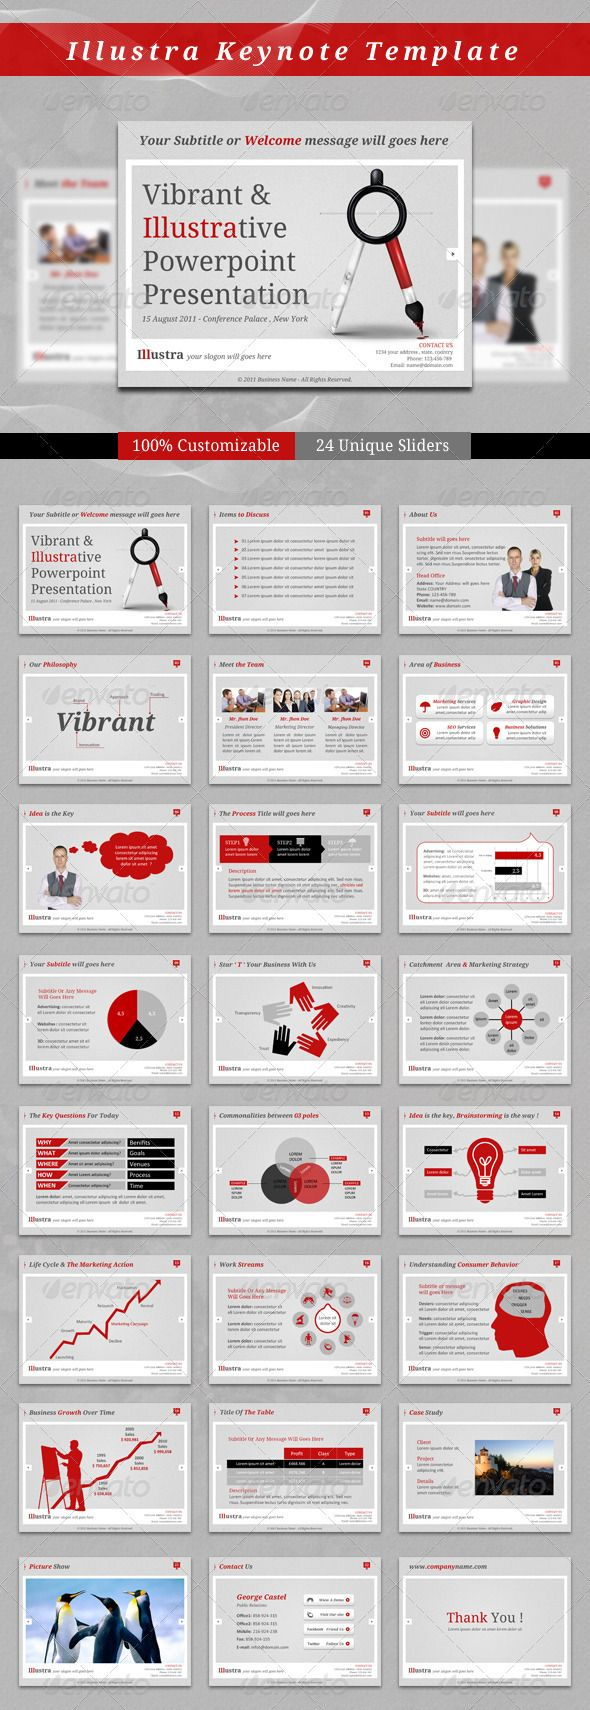 http://graphicriver.net/item/illustra-keynote-template/2559785?WT.ac=category_thumb_1=category_thumb_author=kh2838